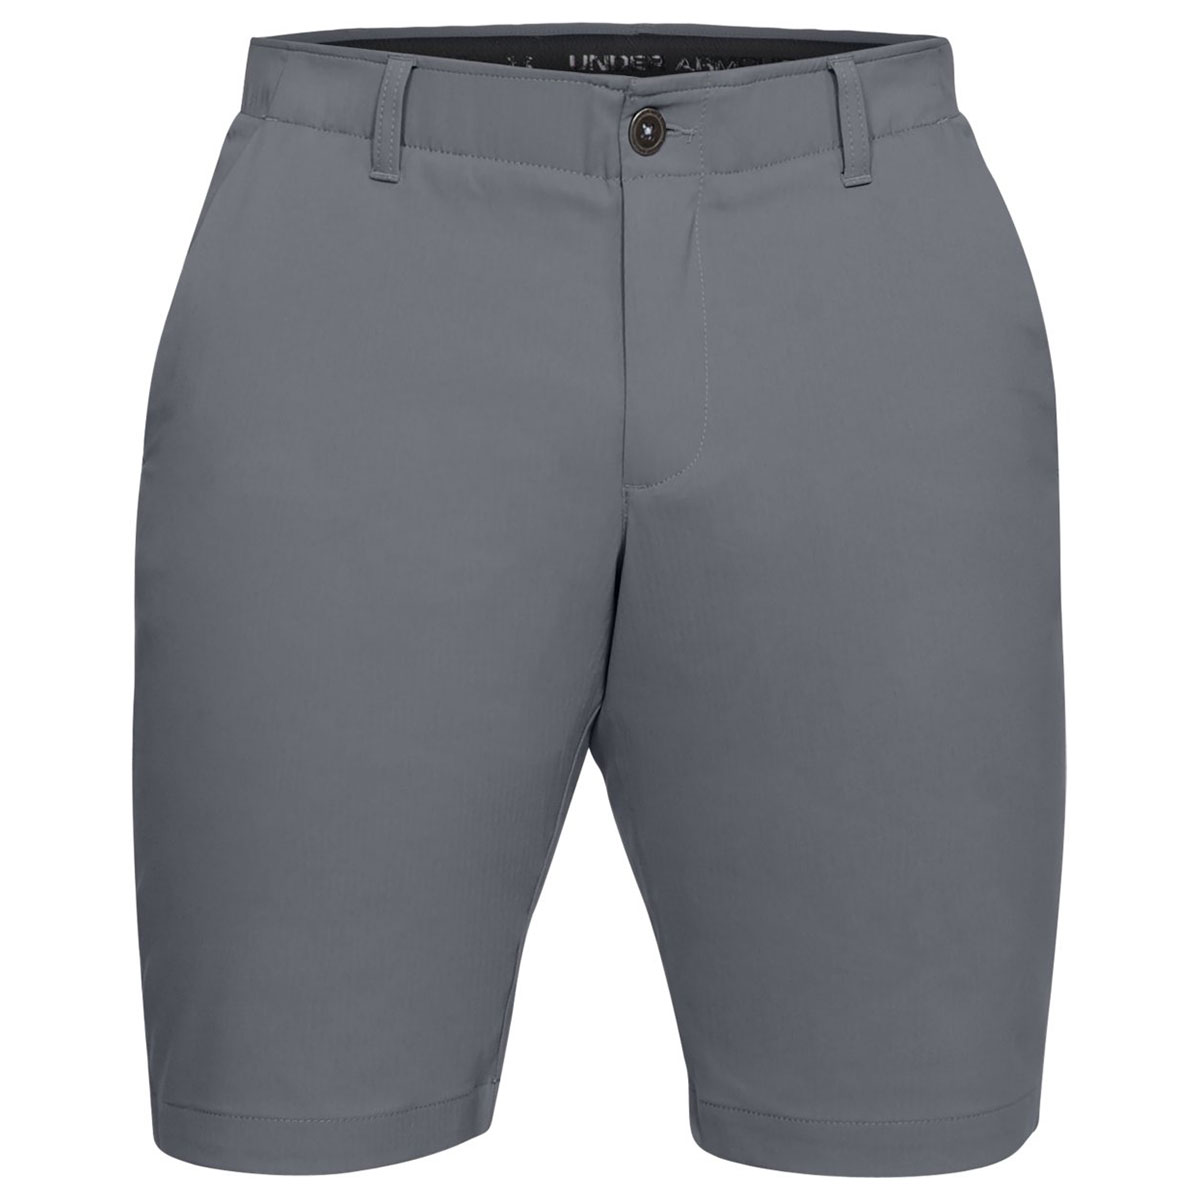 Under-Armour-Mens-Takeover-Taper-Mid-Length-Golf-Shorts-42-OFF-RRP thumbnail 23